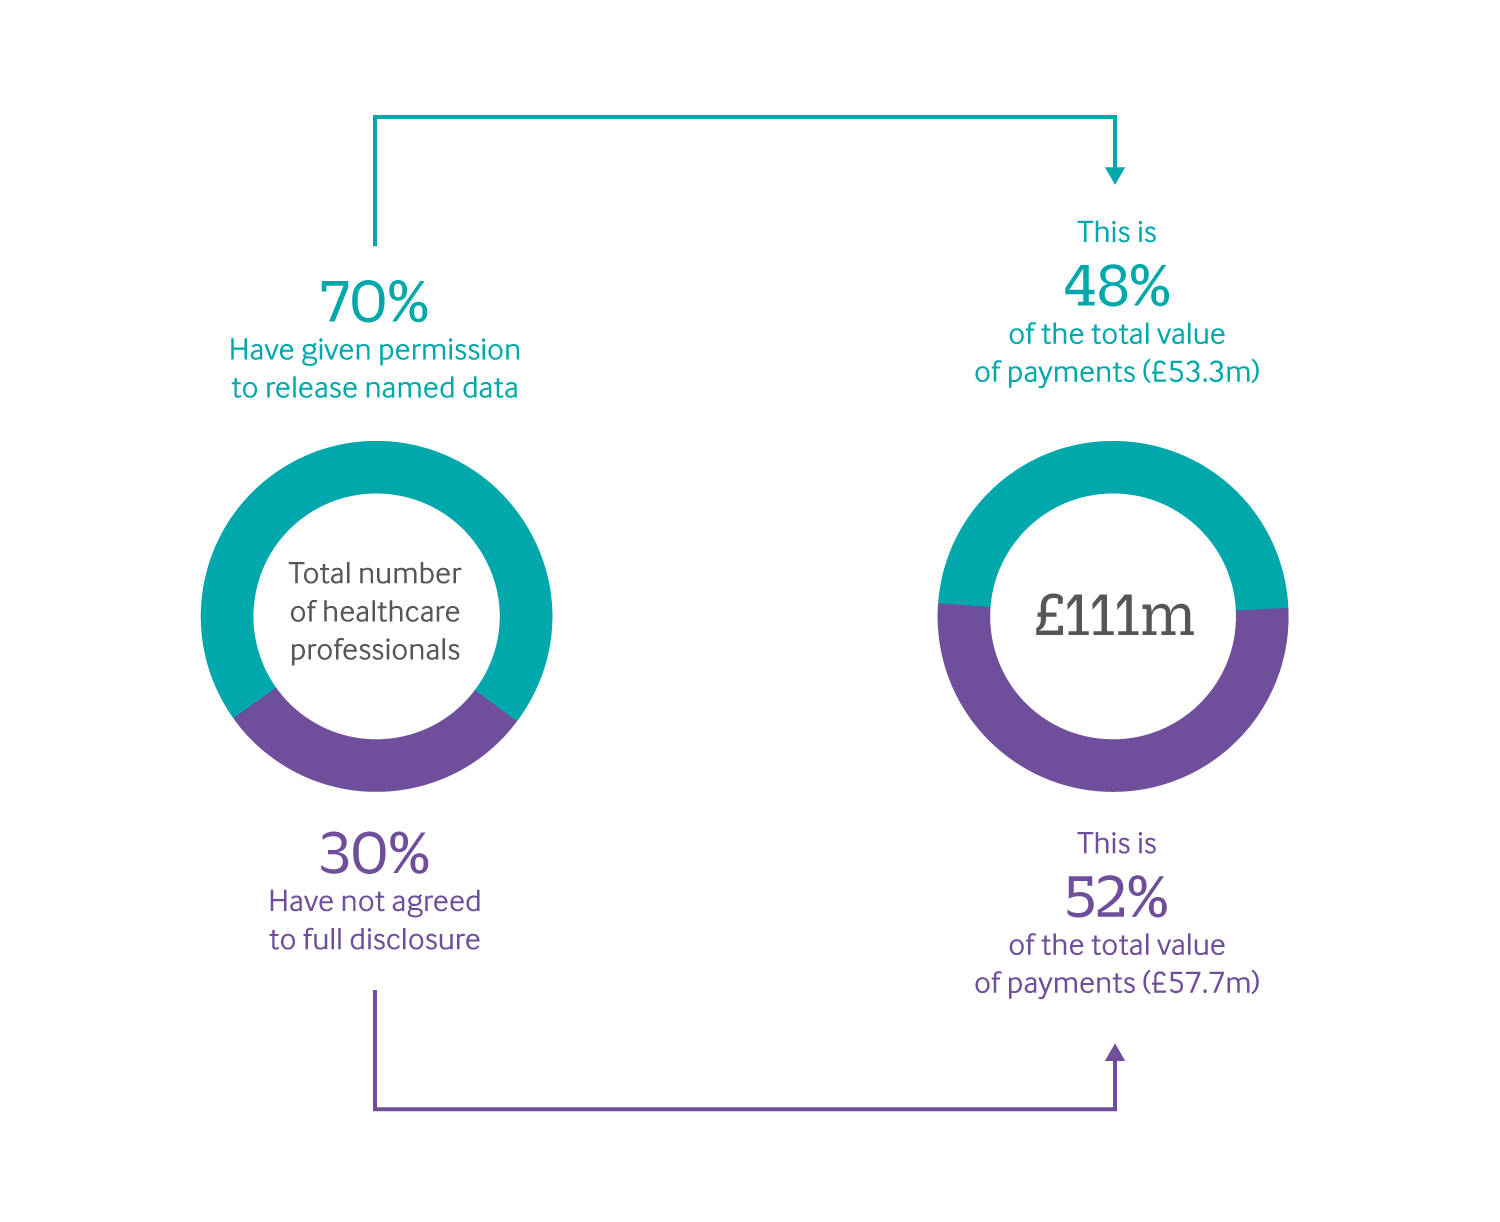 infographic showing that 70% of healthcare professionals have given permission to release named data, but this is only 48% of the total value of payments.